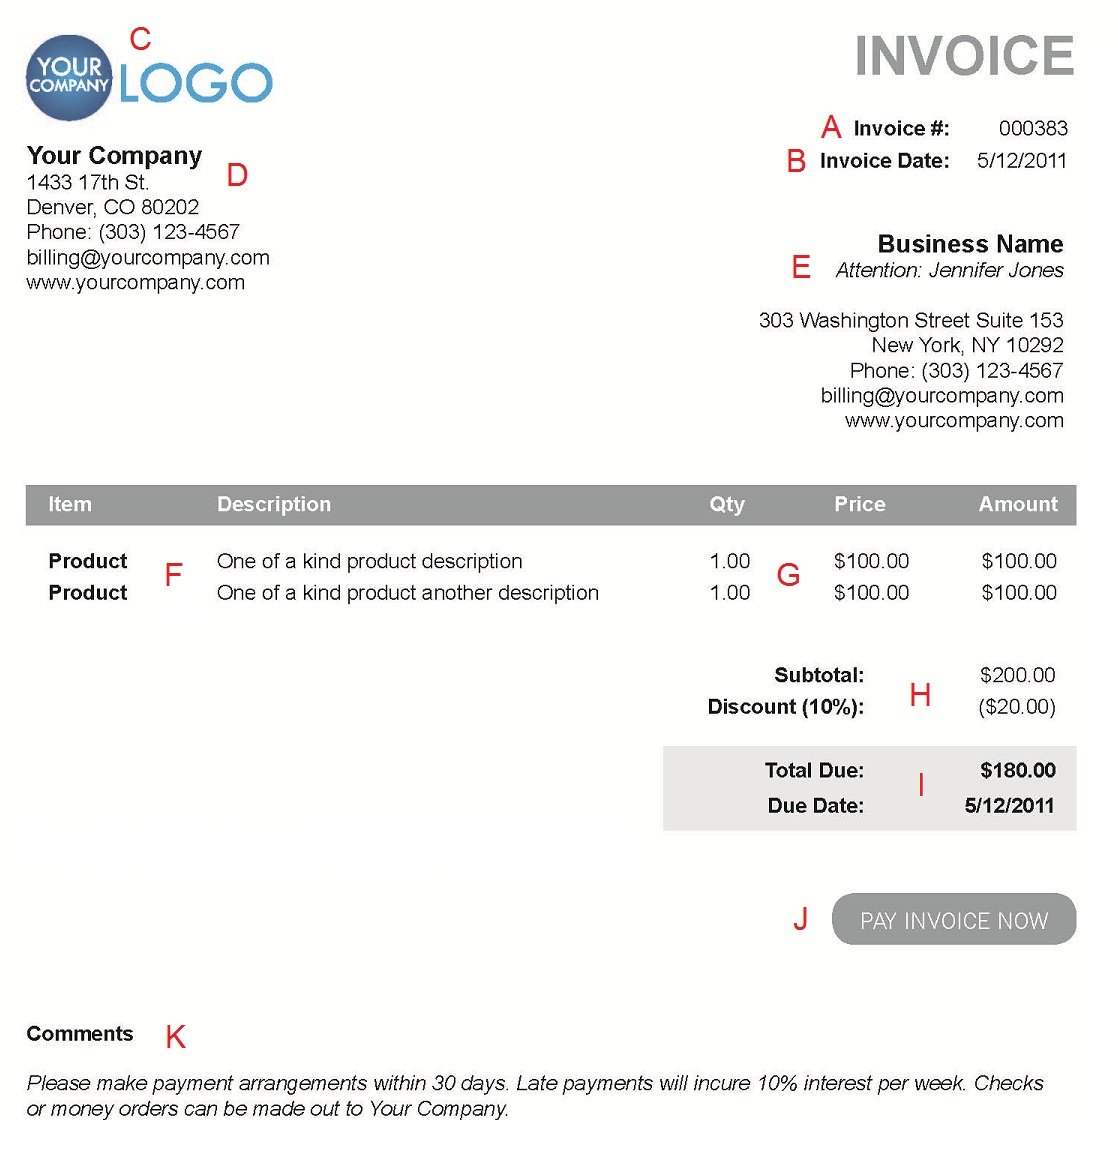 Coolmathgamesus  Fascinating The  Different Sections Of An Electronic Payment Invoice With Fascinating A  With Breathtaking Receipt Templet Also Receipt System In Addition Bond Receipt And Receipt Thermal Paper As Well As Receipt For Sugar Cookies Additionally Sample Hotel Receipt From Paysimplecom With Coolmathgamesus  Fascinating The  Different Sections Of An Electronic Payment Invoice With Breathtaking A  And Fascinating Receipt Templet Also Receipt System In Addition Bond Receipt From Paysimplecom